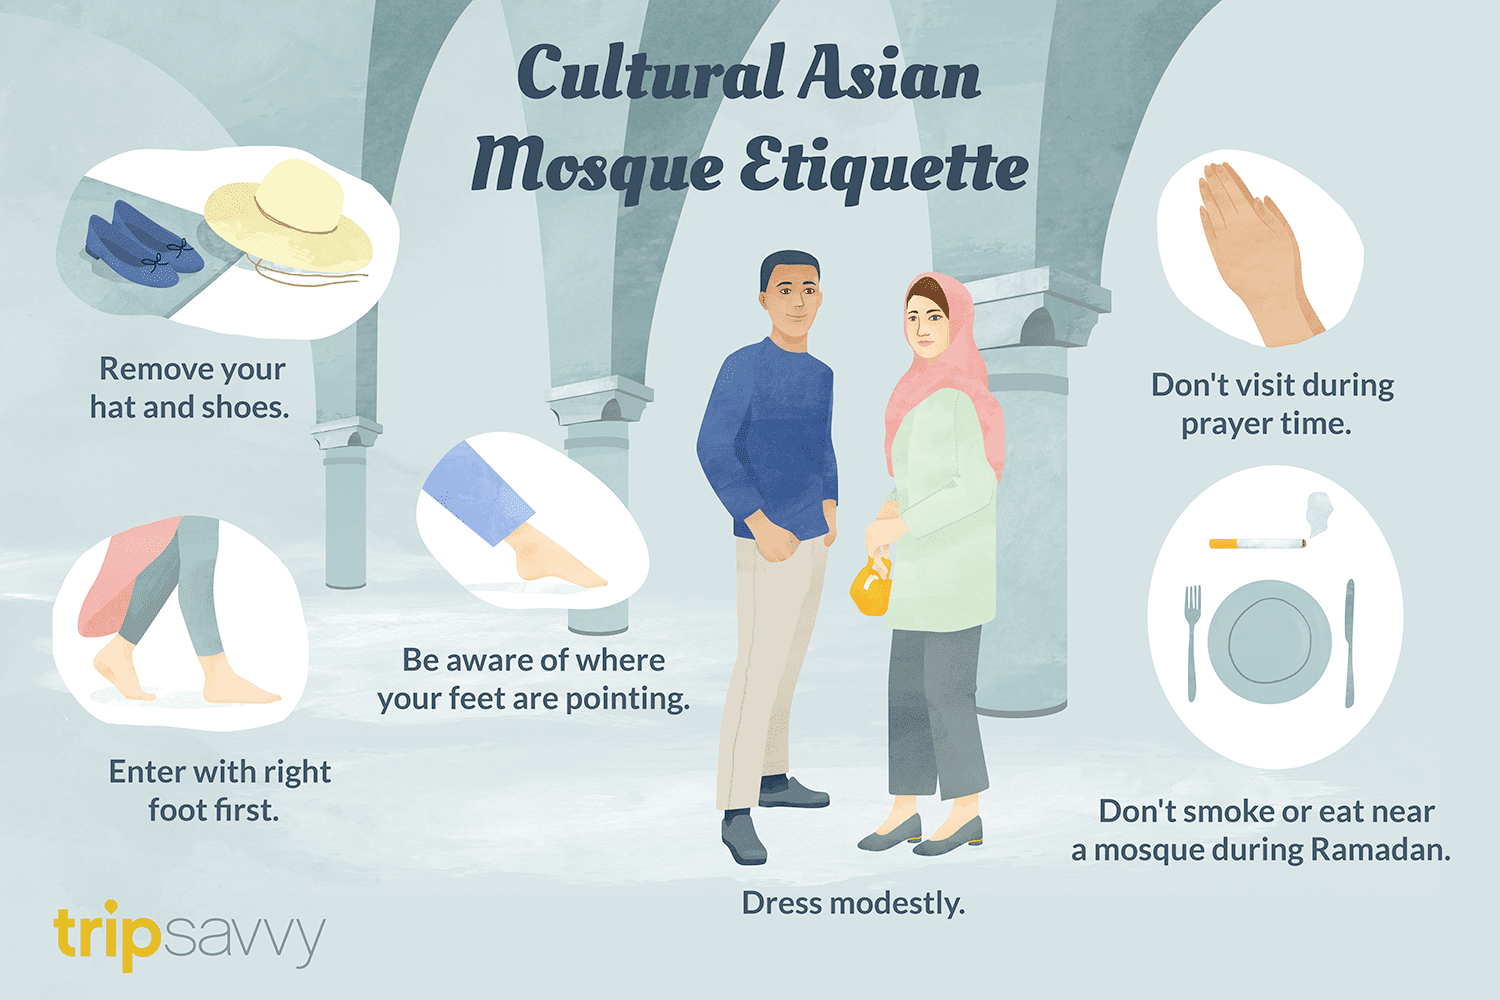 Simple Rules of Etiquette for Visiting Mosques